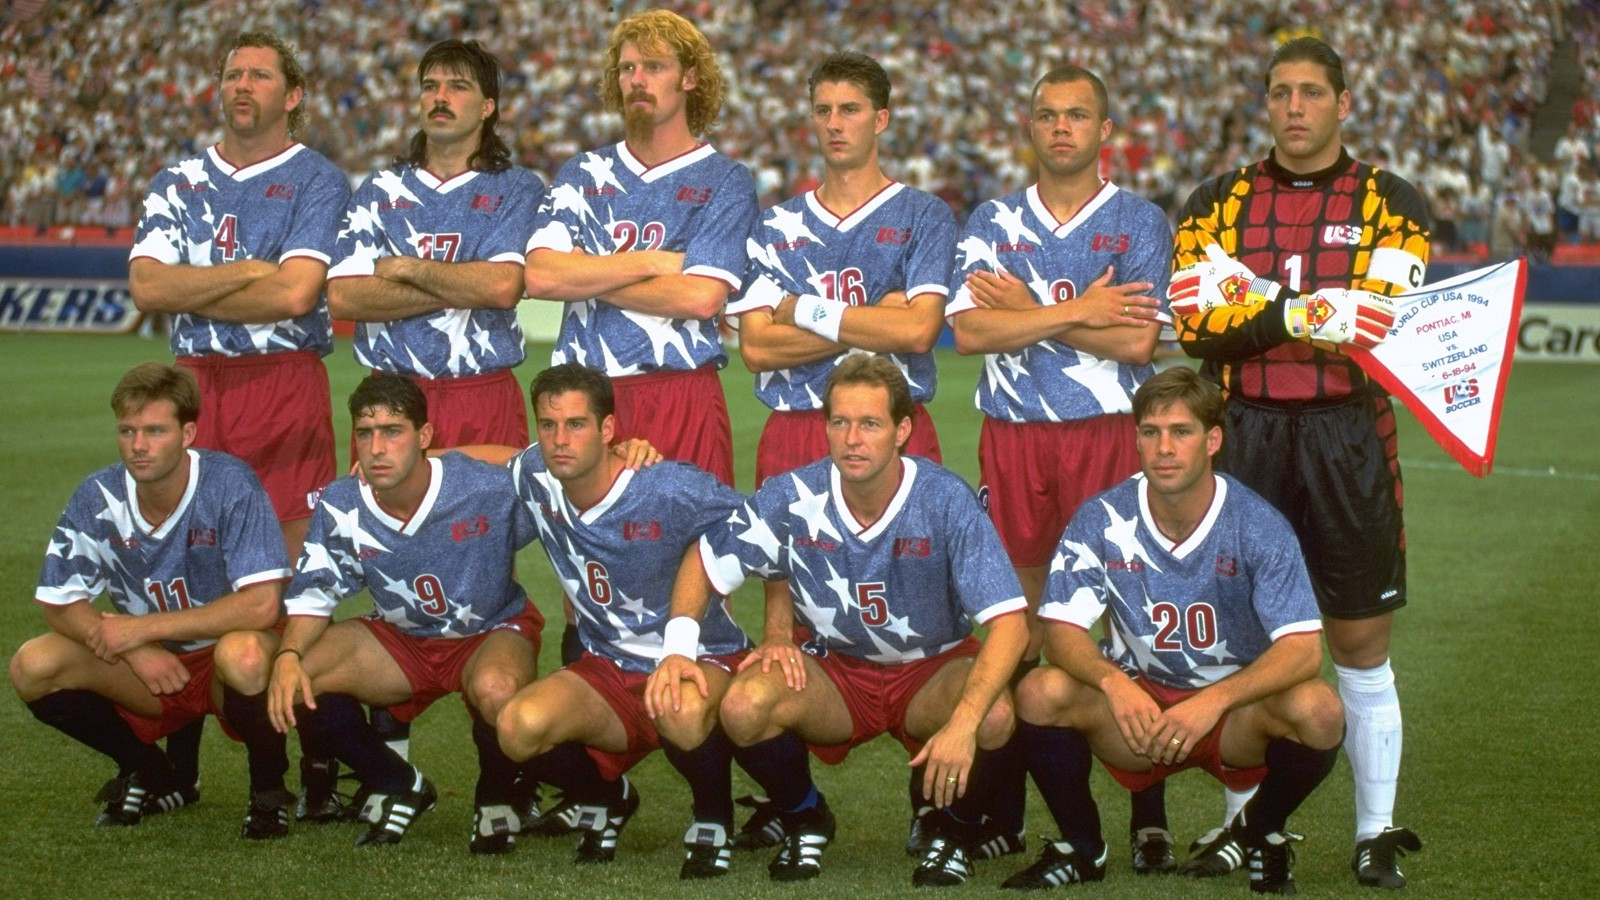 2fcc89796 The 1994 World Cup launched soccer as we know it in the United States. It  was directly responsible for the start of Major League Soccer